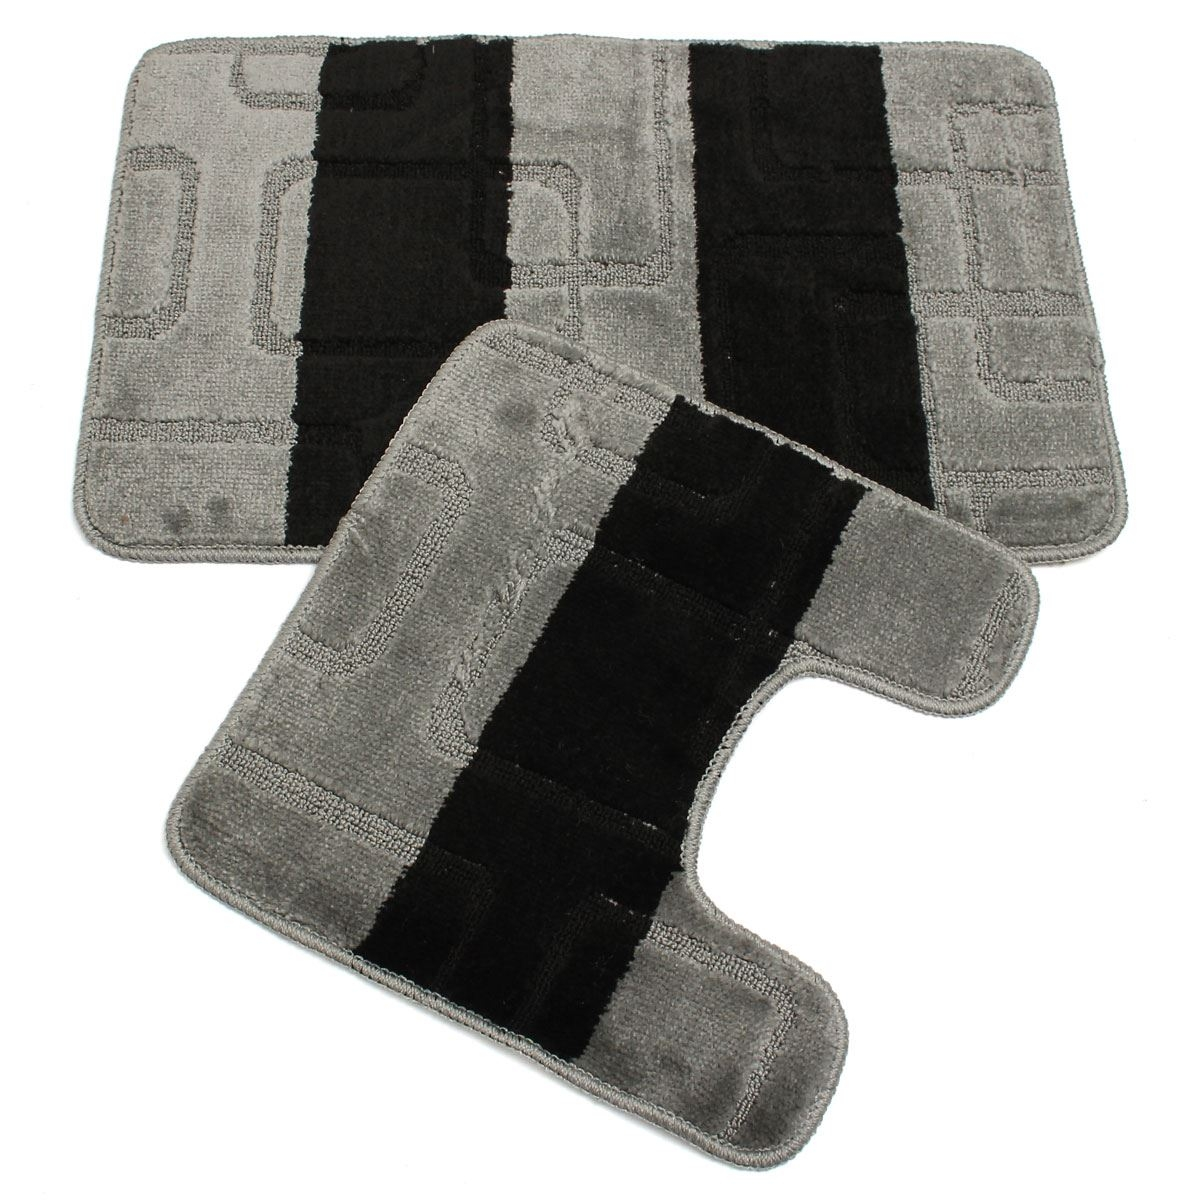 Striped Bathroom Mat Sets1200 X 1200